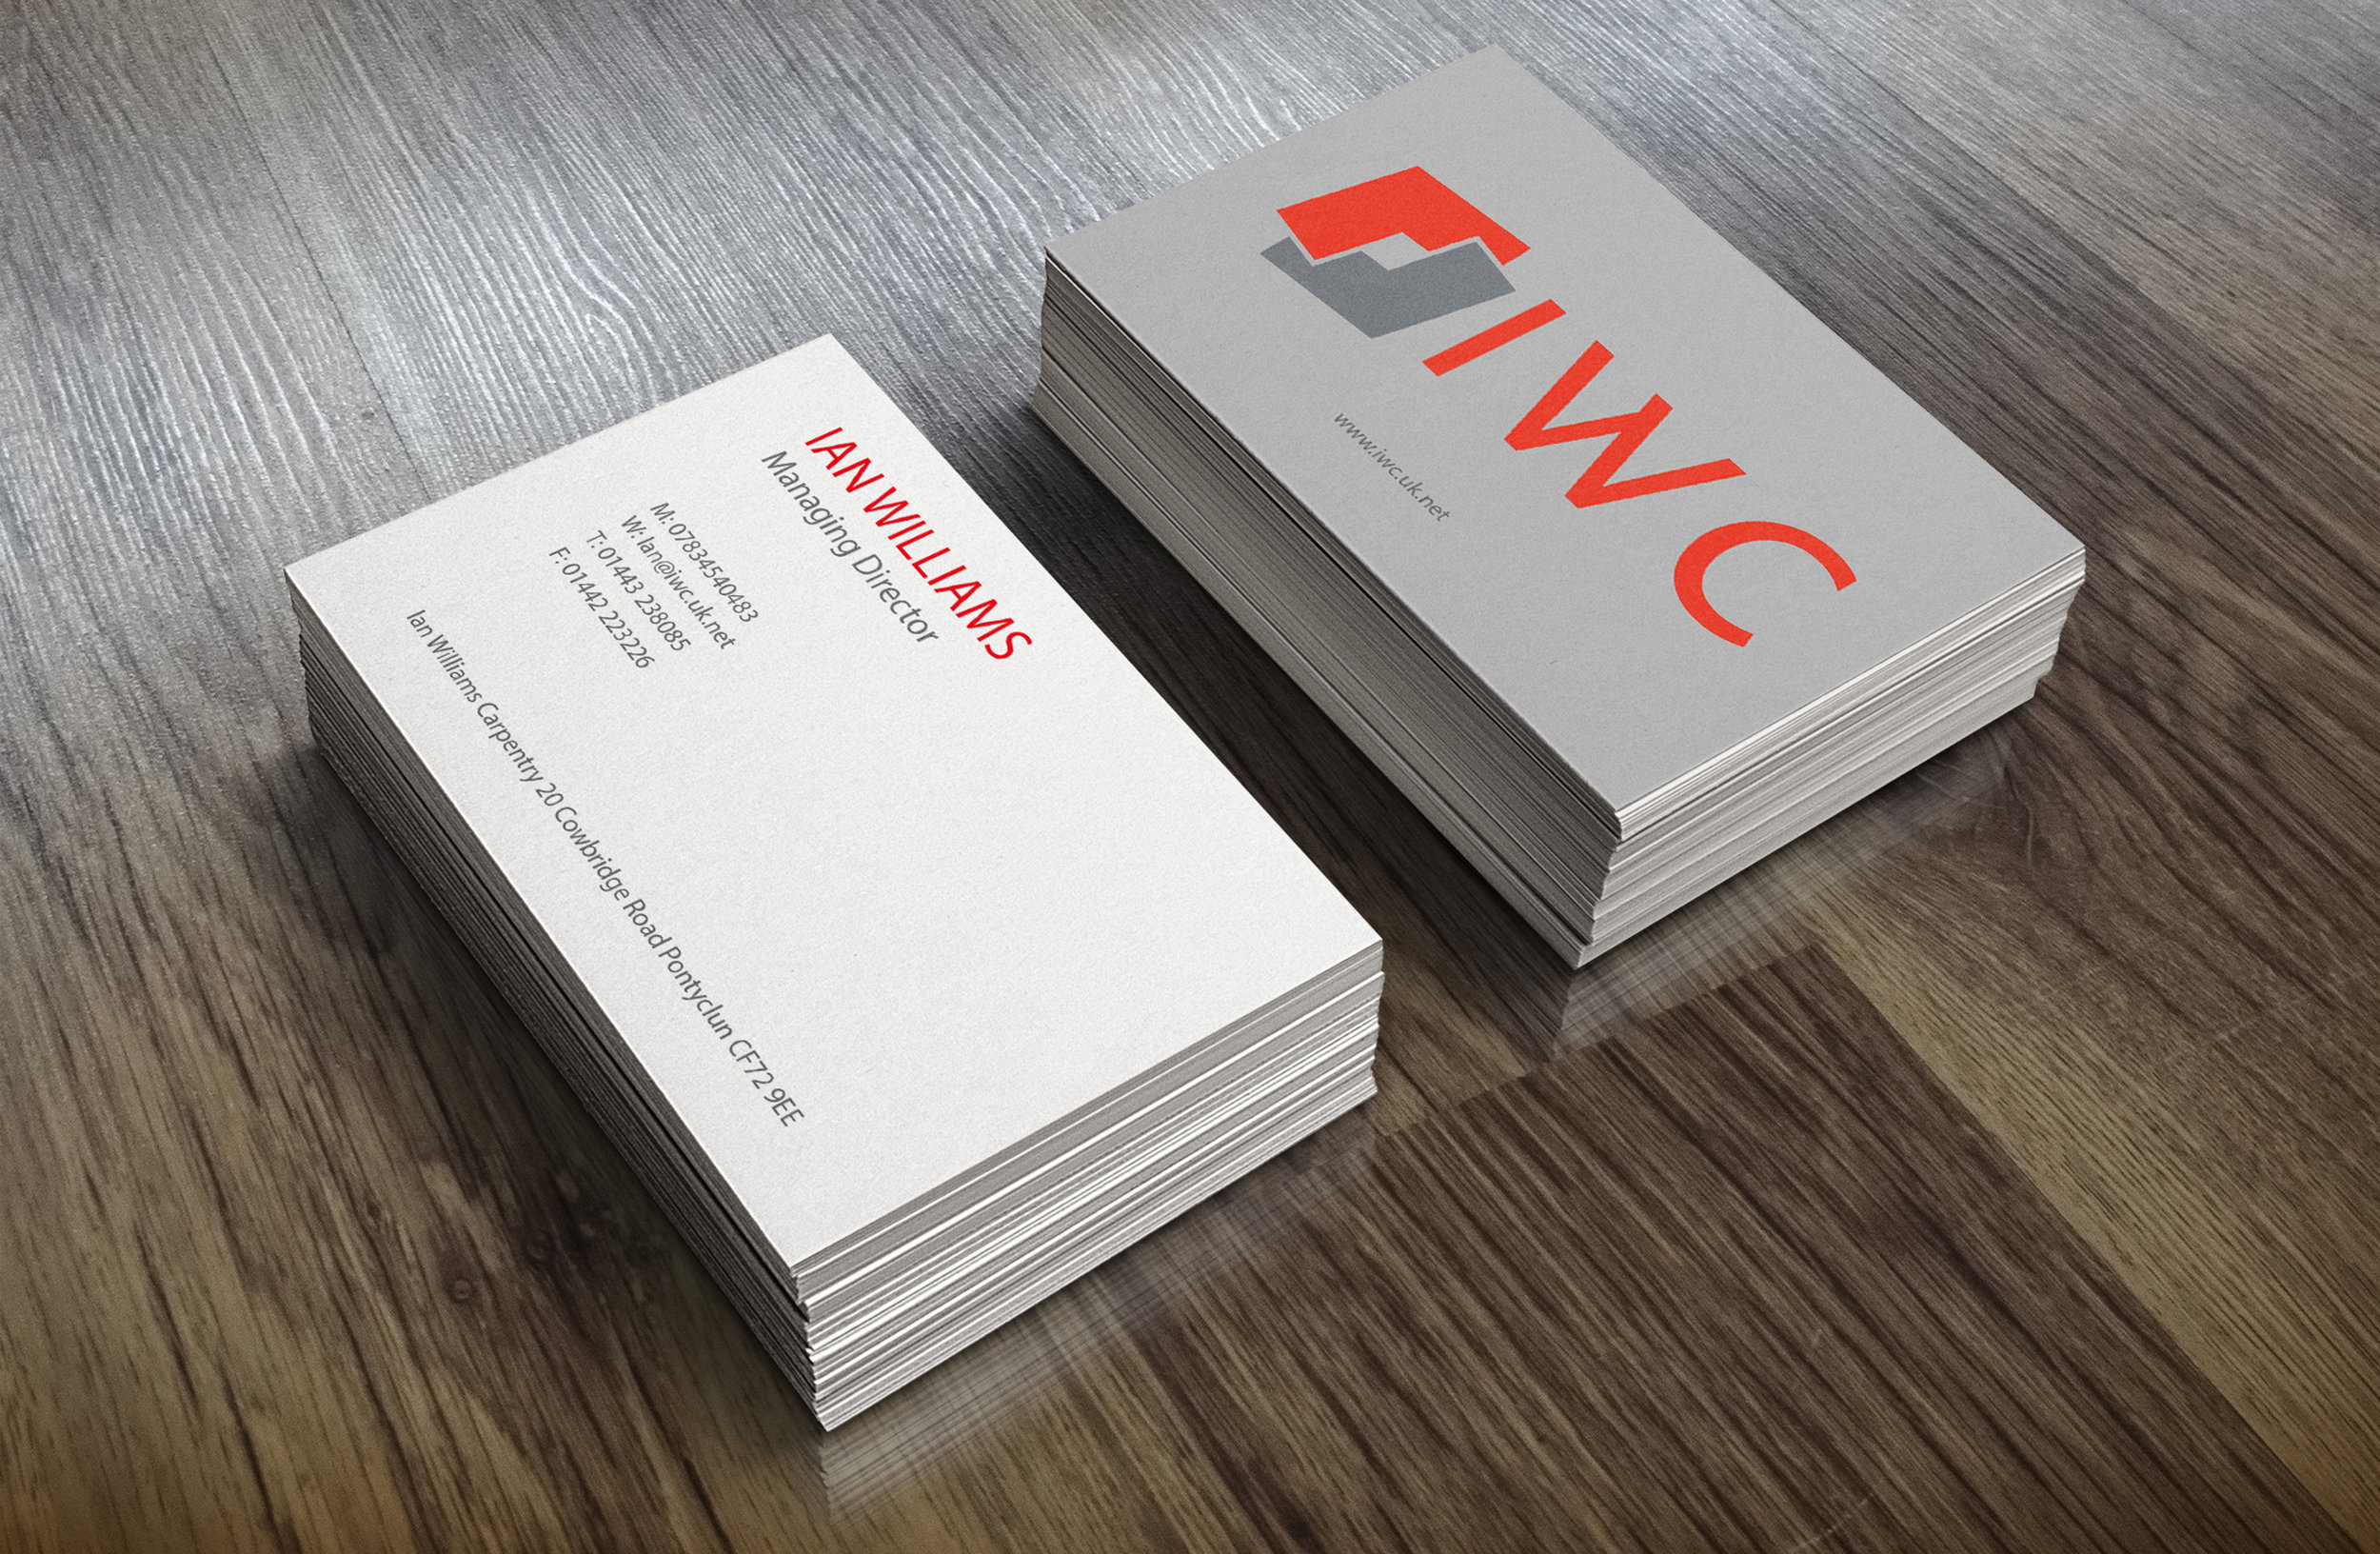 iwc-corporate-business-cards.jpg